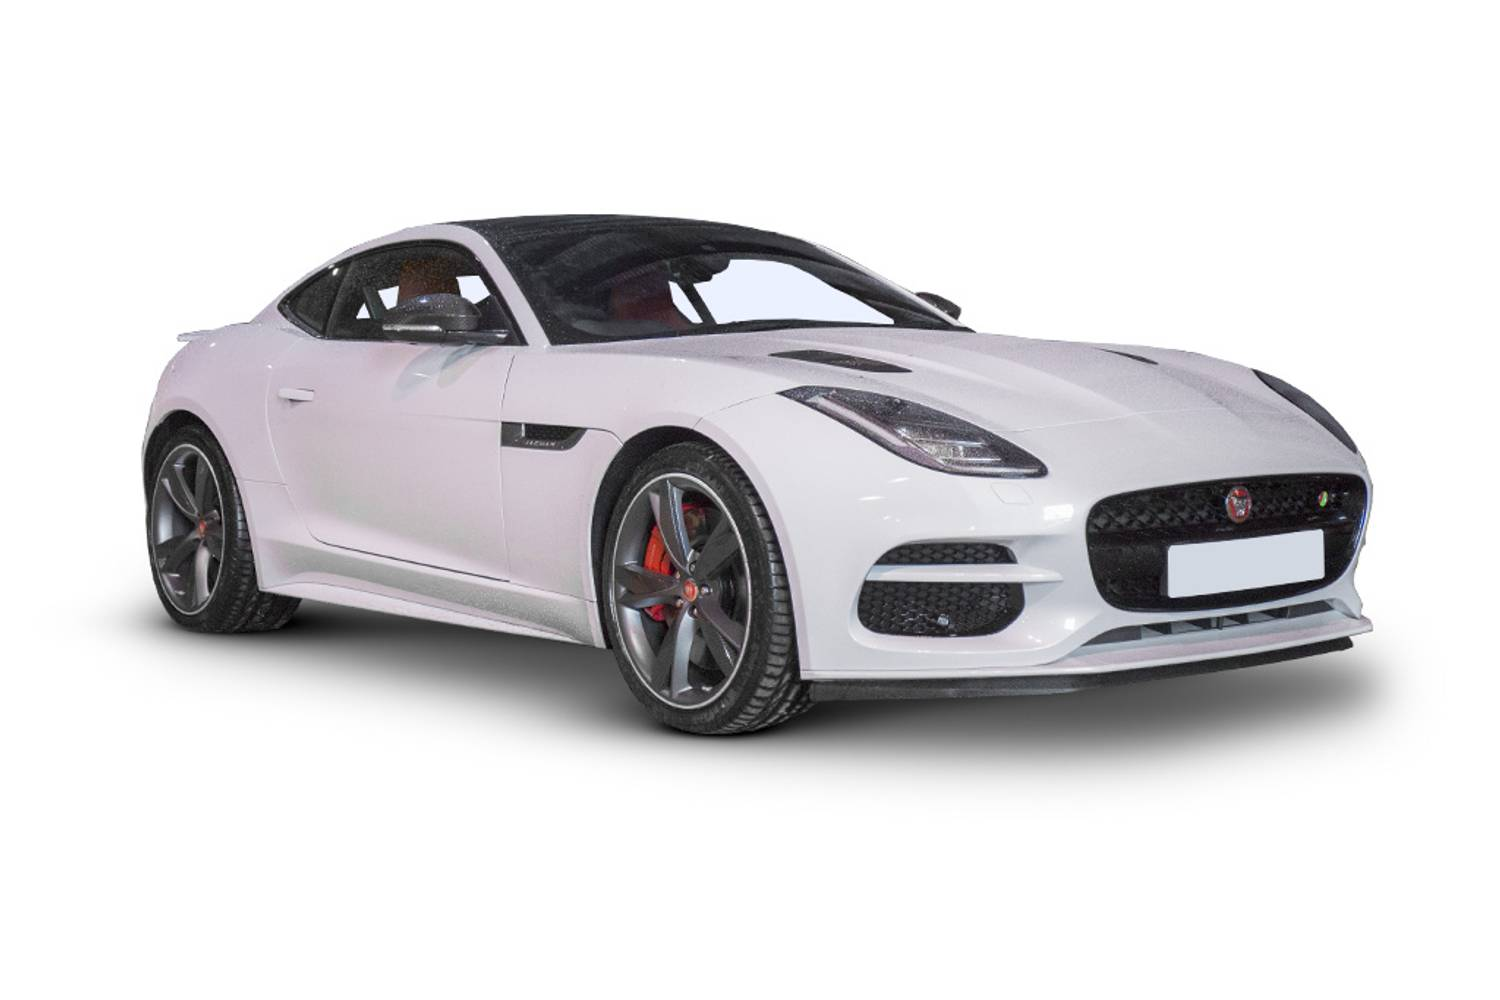 new jaguar f type coupe 3 0 supercharged v6 r dynamic 2 door auto 2017 for sale. Black Bedroom Furniture Sets. Home Design Ideas